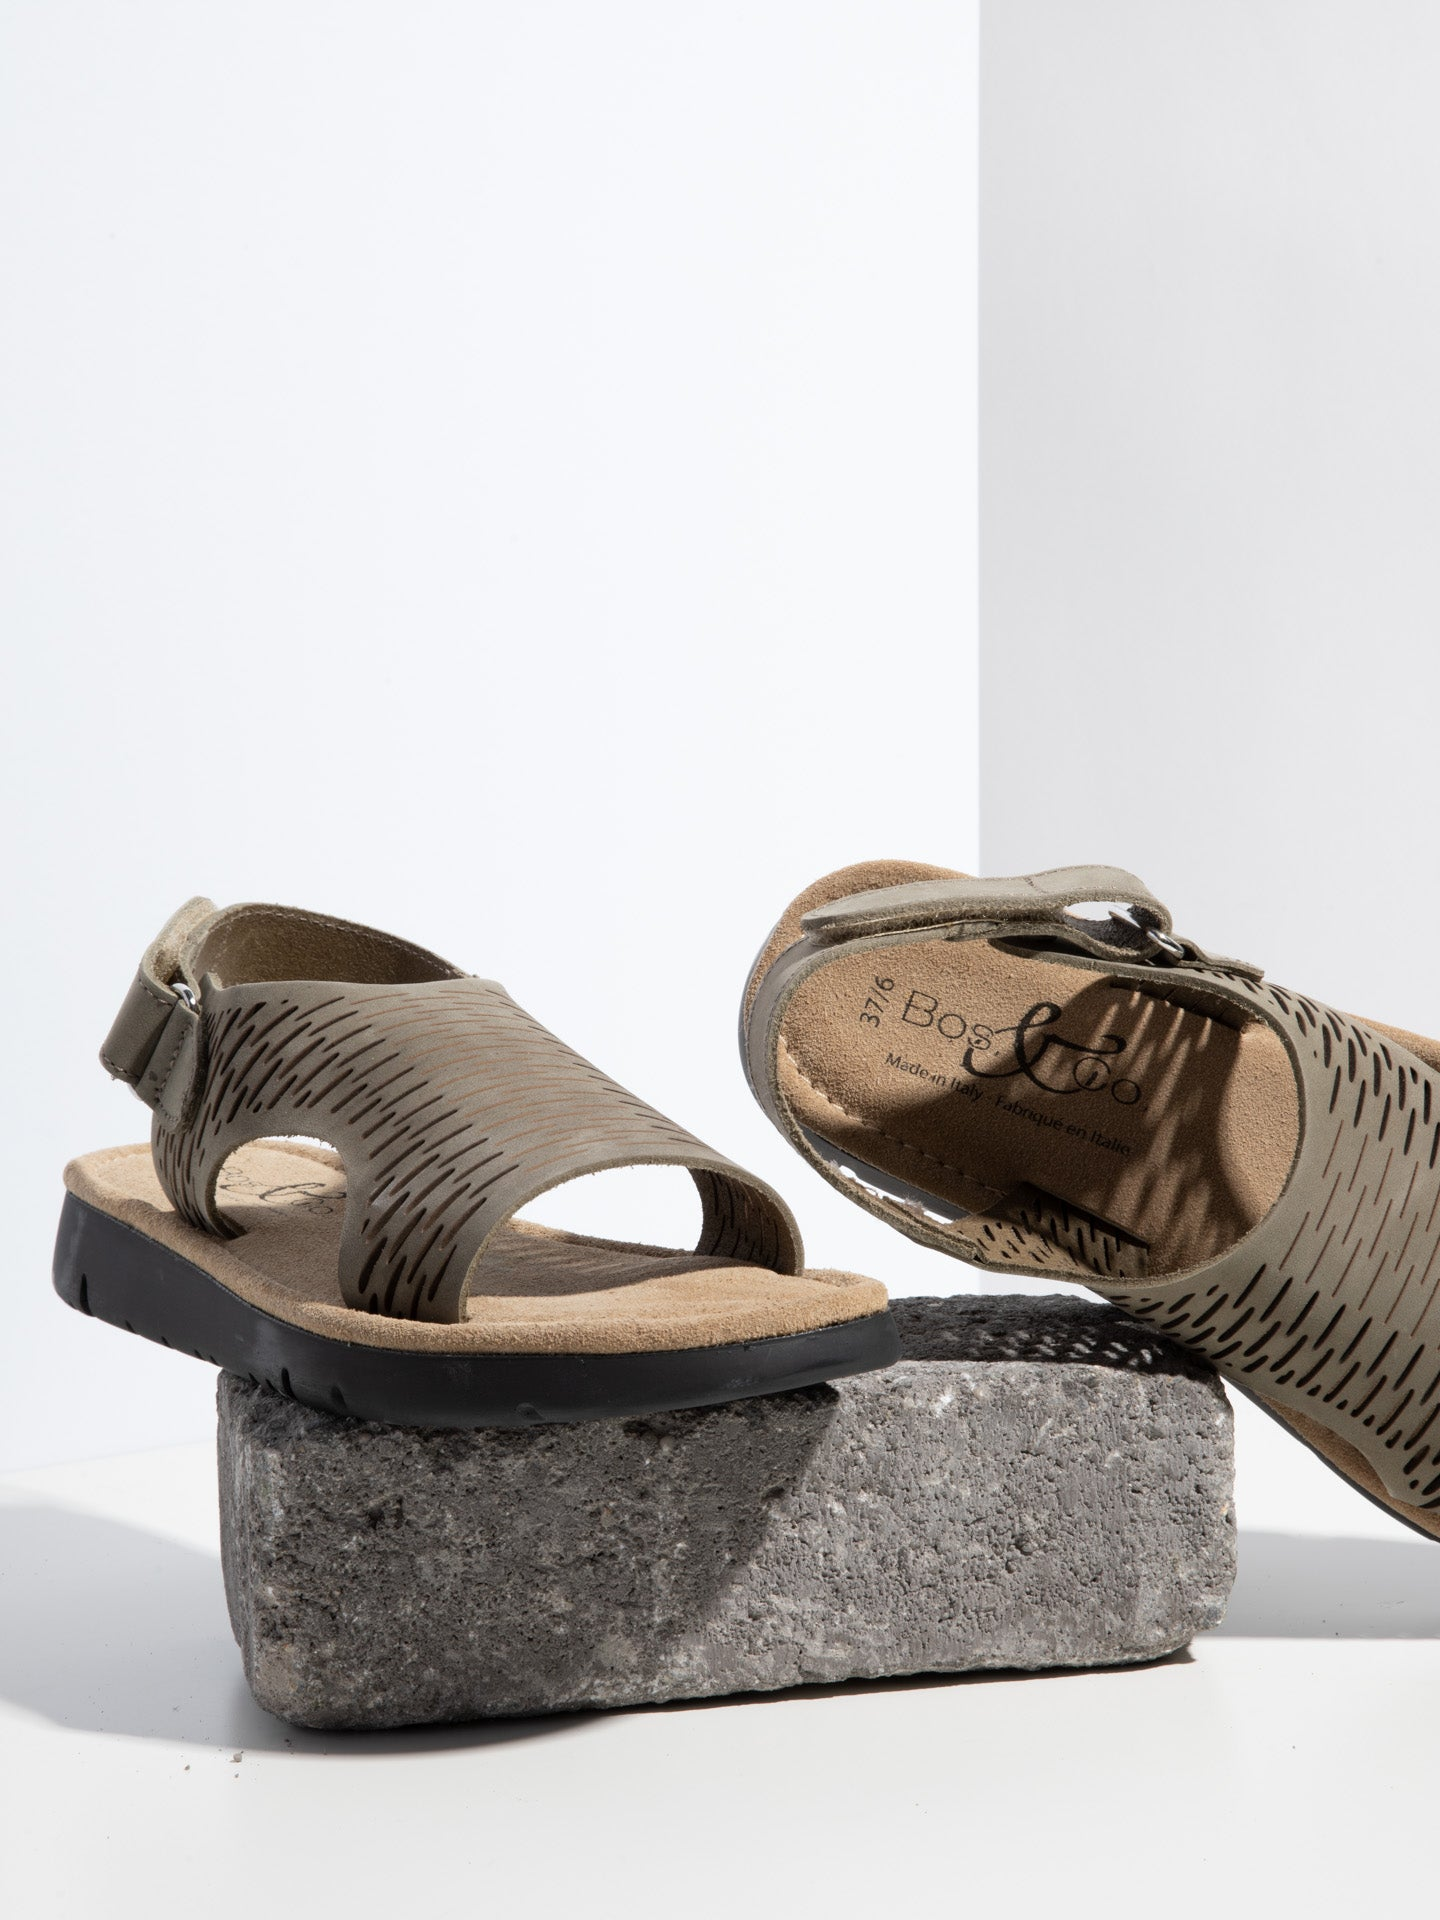 Bos&Co Green Velcro Sandals